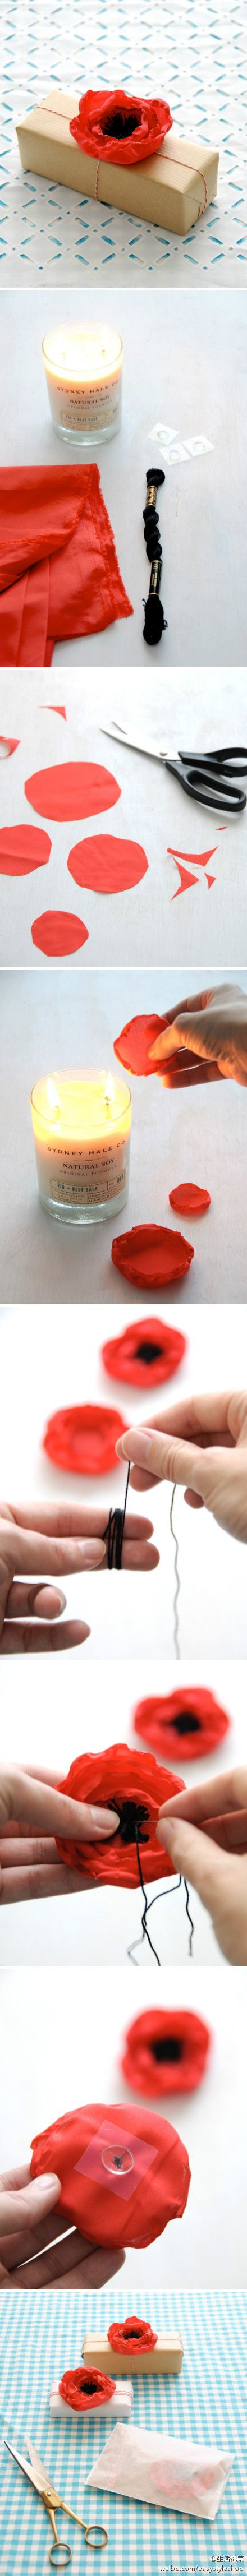 DIY Poppies: Gift Wrapping, Fabric Flowers, Paper Flower, Diy Poppies, Diy Poppy, Flower Tutorial, Poppy Flowers, Craft Ideas